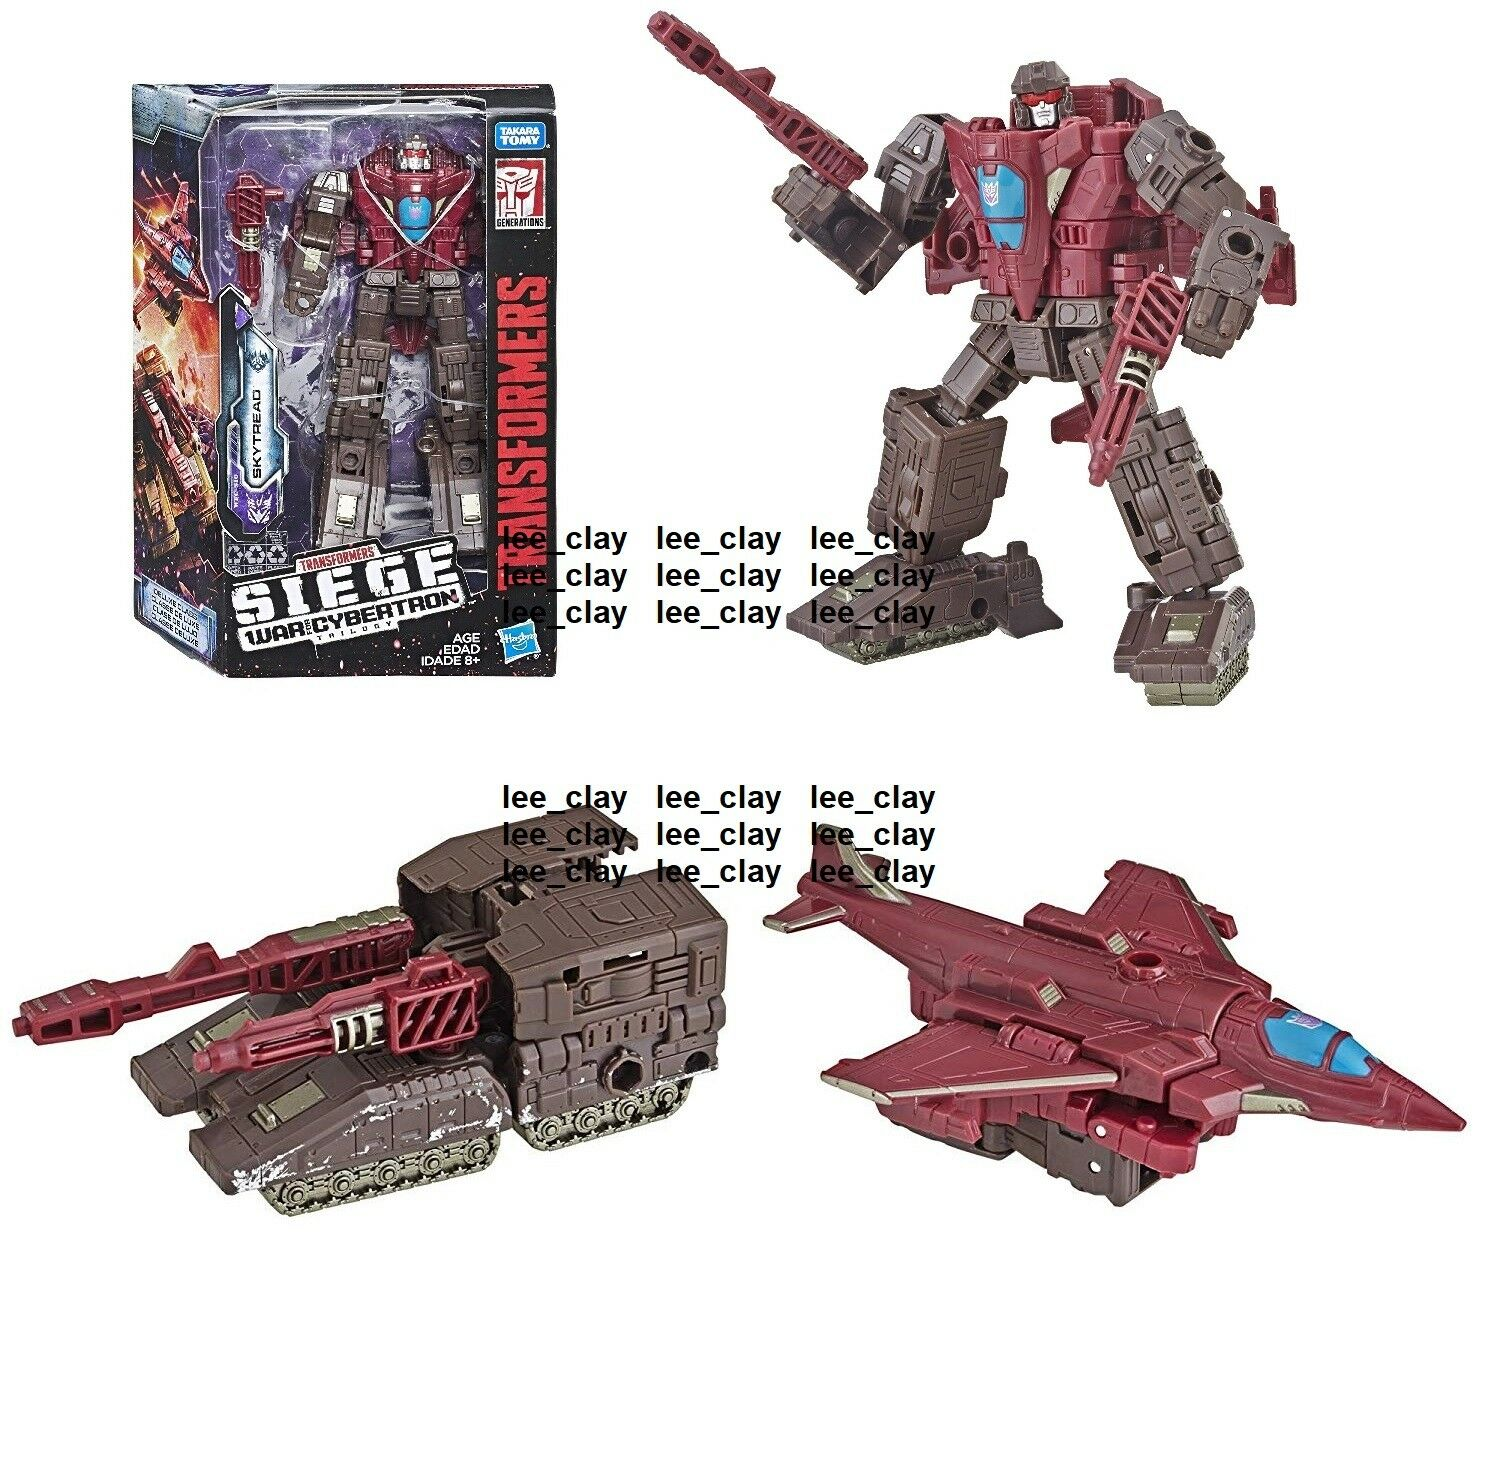 Transformers SIEGE War for Cybertron Deluxe Class SKYTREAD SKYTREAD SKYTREAD TRIPLE CHANGER  NEW  f1757c